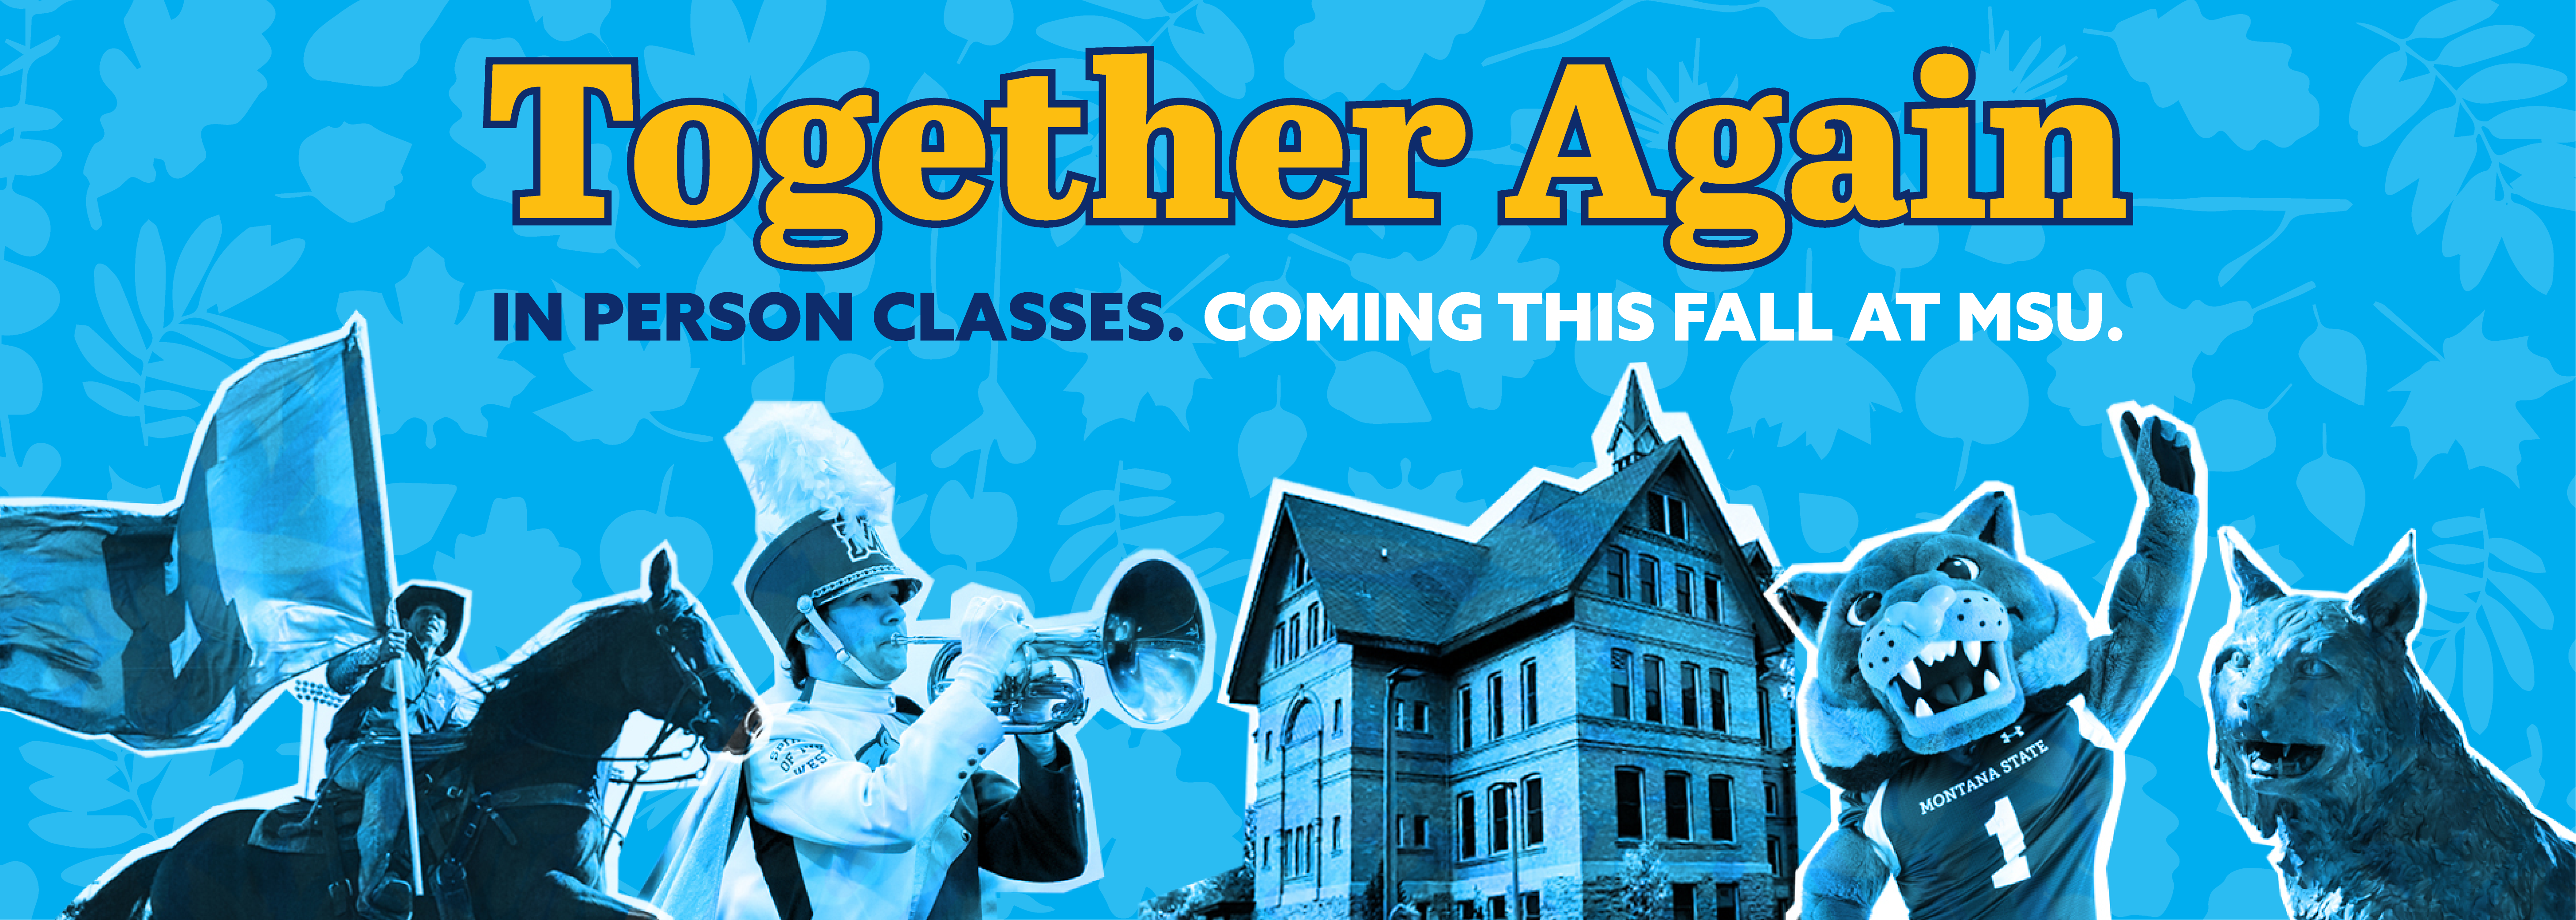 Together Again In Person Classes coming this fall